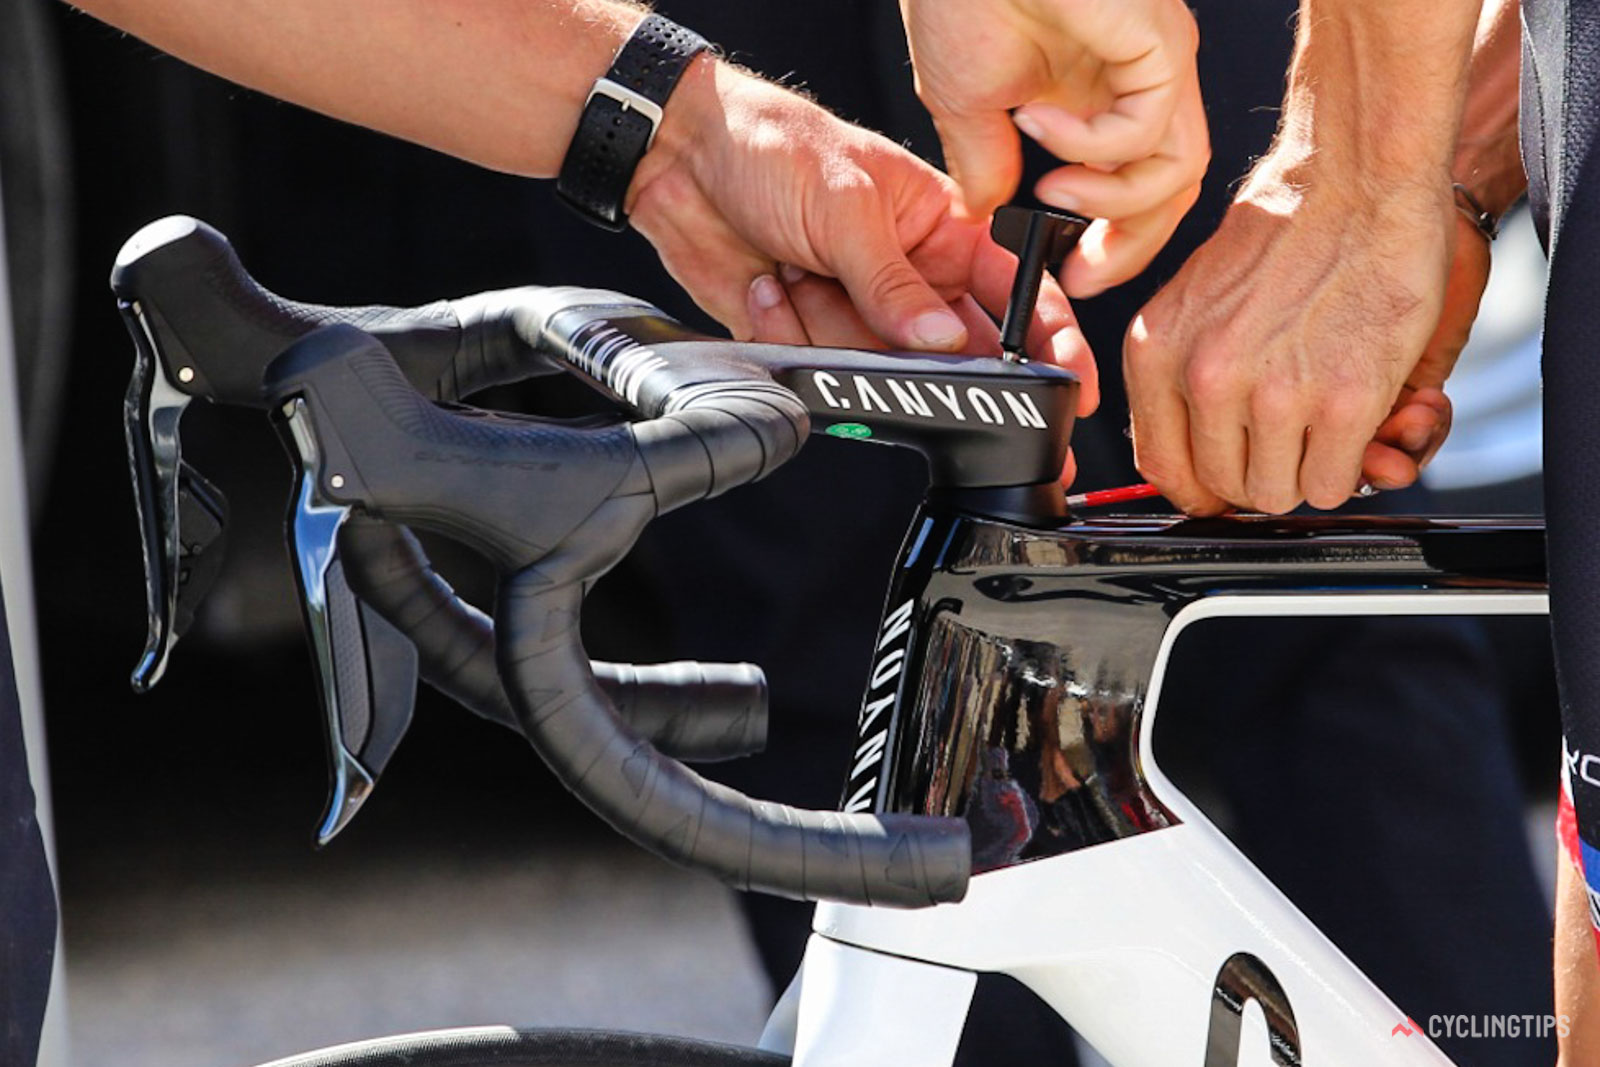 new aeroad owners to stop riding bike